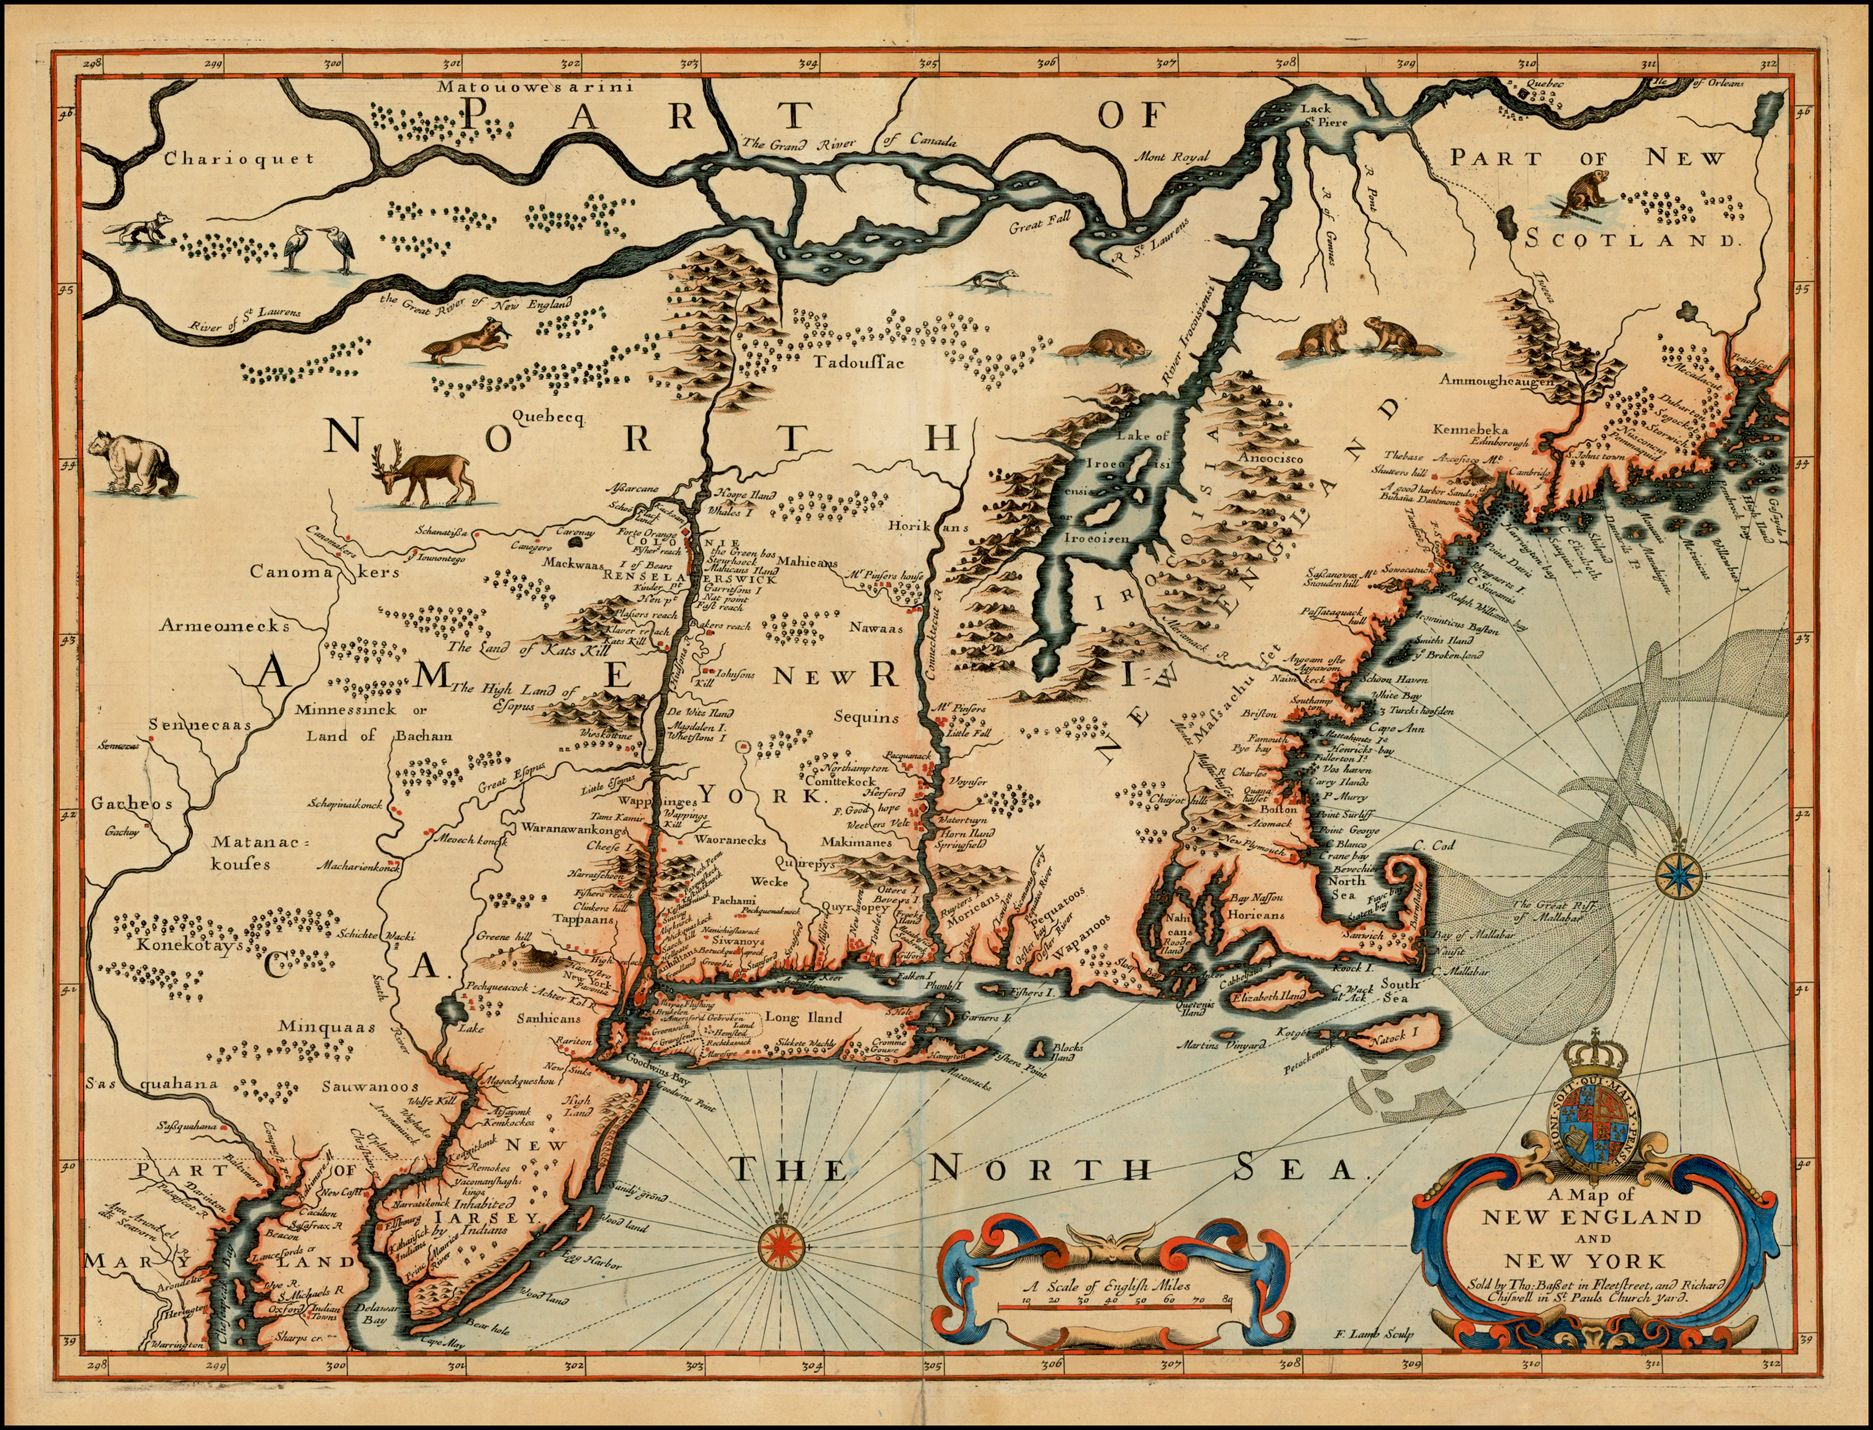 A Map of New England and New York 1676 | Old maps | Map, Antique ...